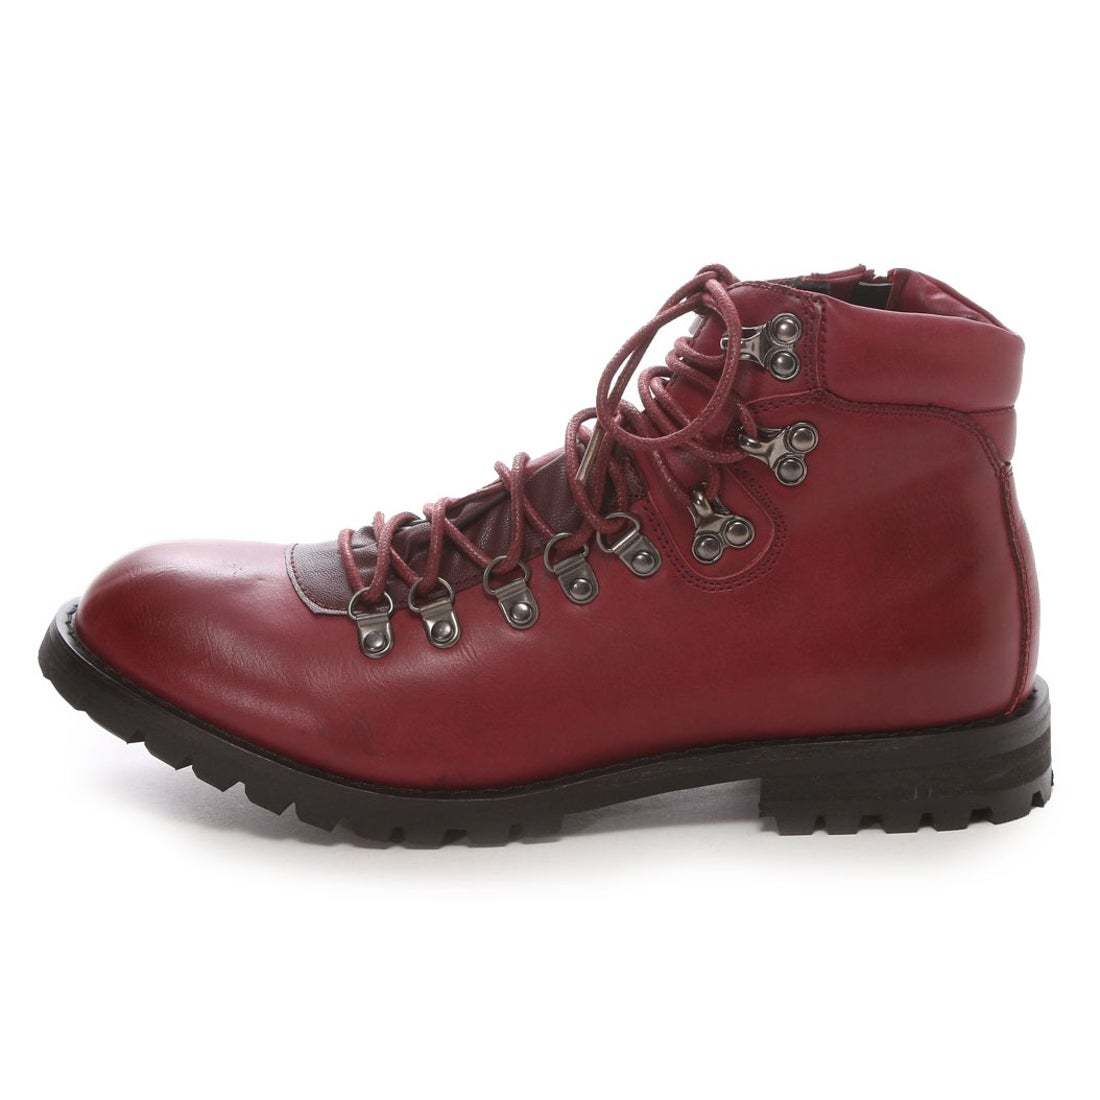 Ladies Red Safety Toe Cap Work Boots 0495